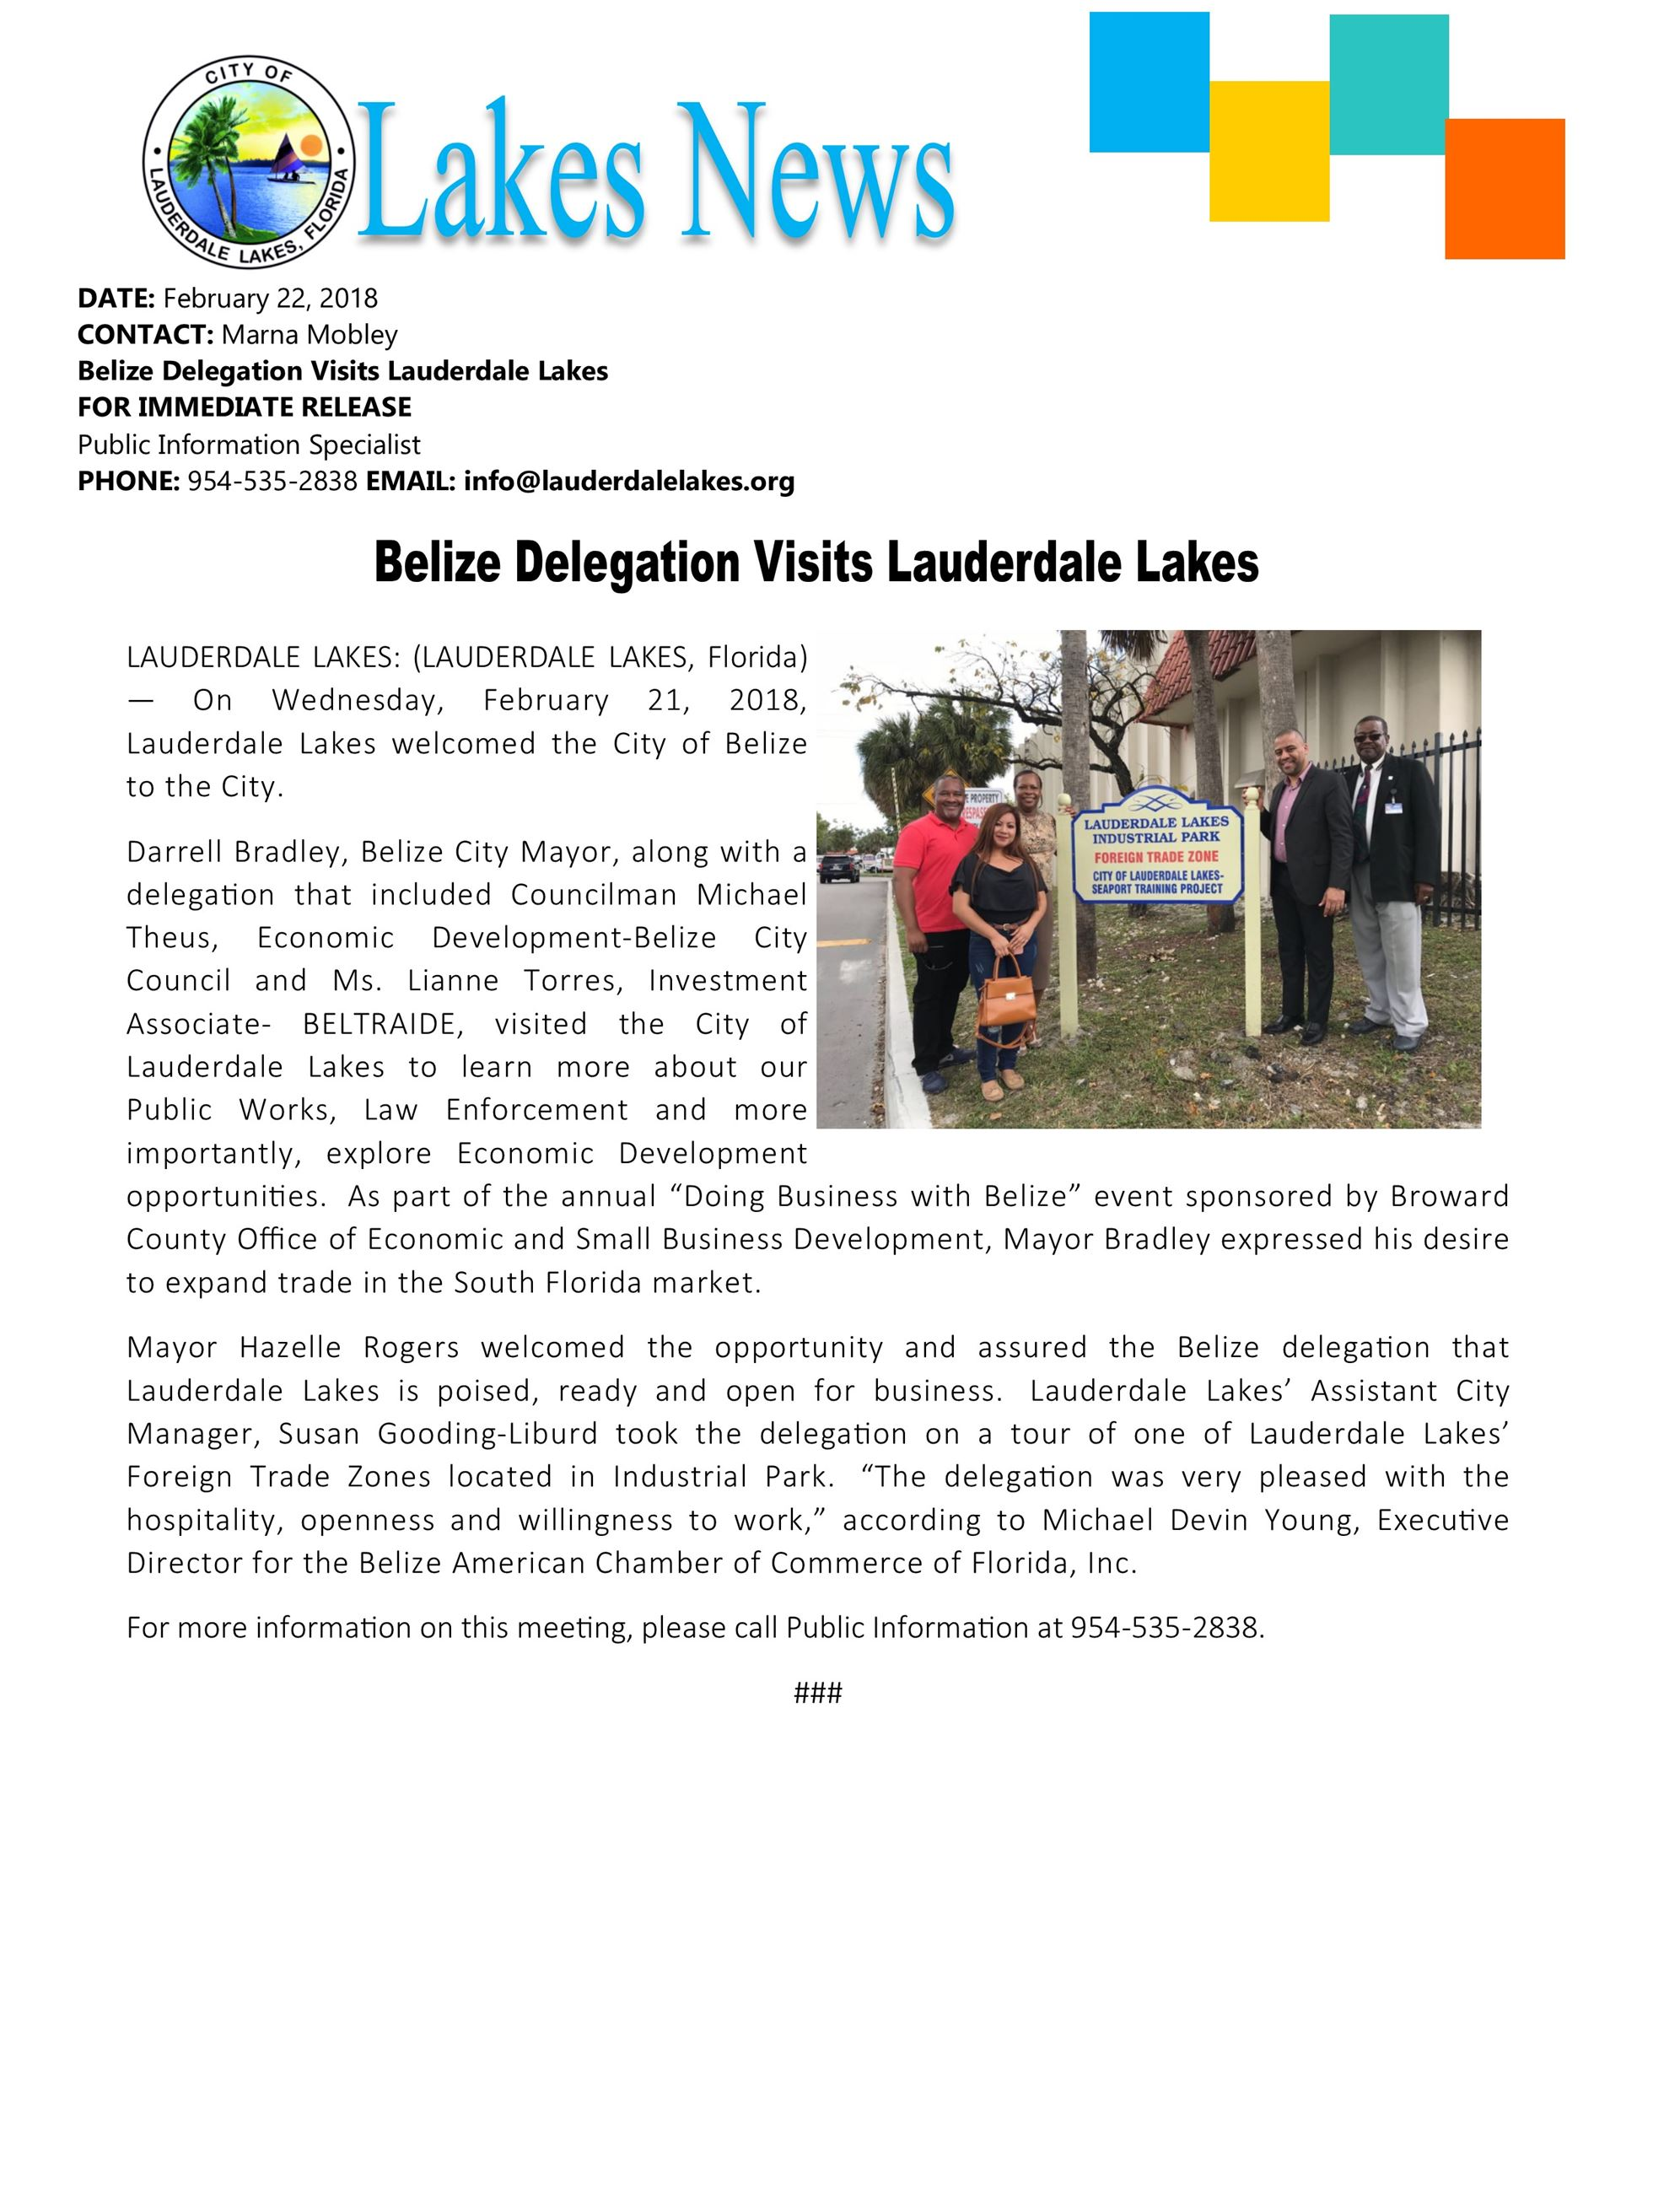 press.belize visit 2018